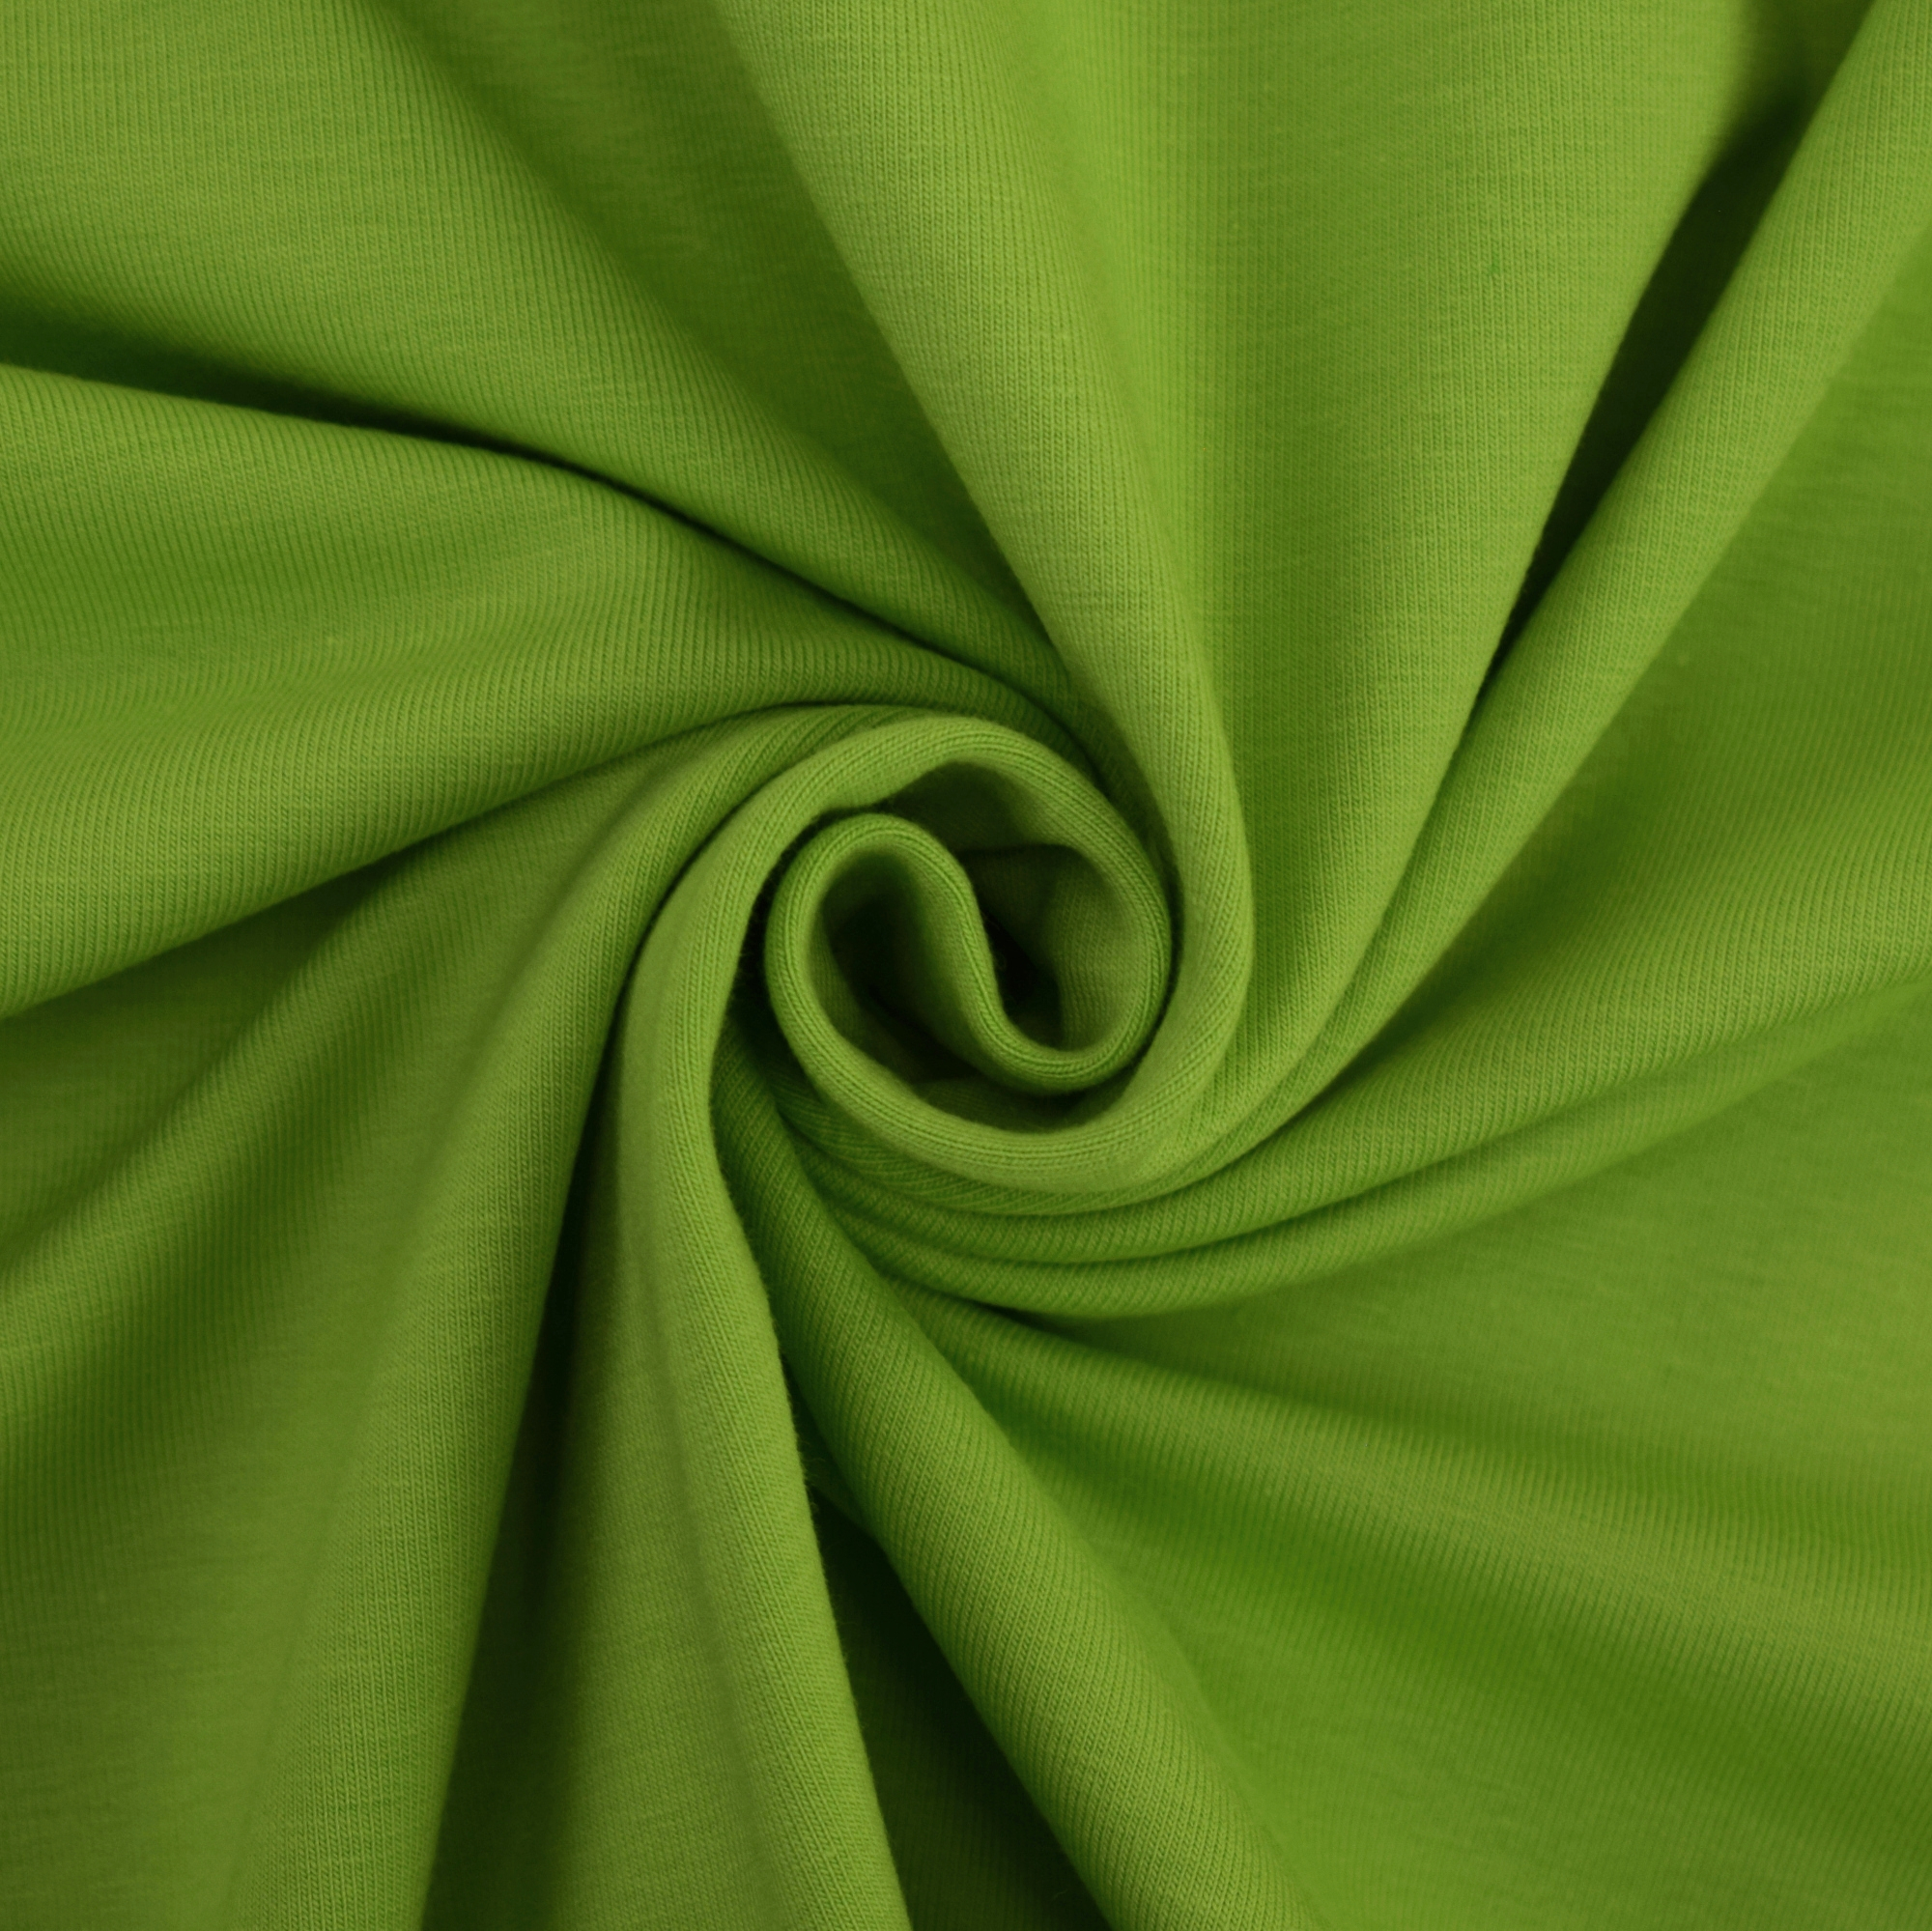 Cotton jersey plain, light green | 455.421-5304 | grün